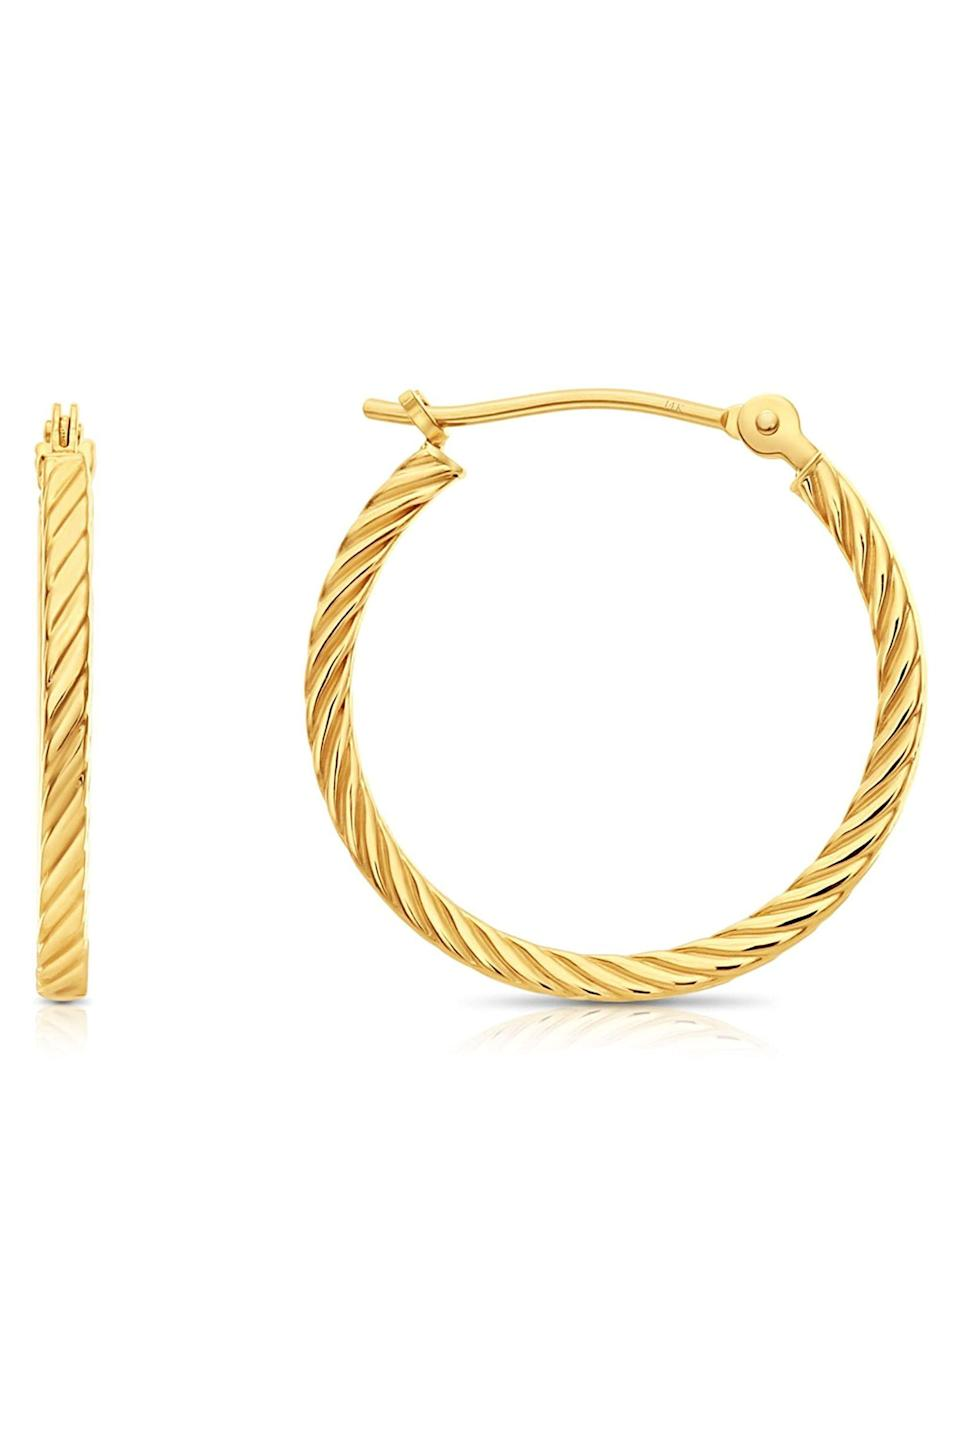 """<p><strong>Tilo Jewelry</strong></p><p>amazon.com</p><p><strong>$69.99</strong></p><p><a href=""""https://www.amazon.com/dp/B0821WQ9KF?tag=syn-yahoo-20&ascsubtag=%5Bartid%7C10051.g.13053688%5Bsrc%7Cyahoo-us"""" rel=""""nofollow noopener"""" target=""""_blank"""" data-ylk=""""slk:Shop Now"""" class=""""link rapid-noclick-resp"""">Shop Now</a></p><p>Gold hoops go with everything and somehow always feel cool wearing. Here, a 14k gold pair made in the US that won't slim down your holiday shopping budget. </p>"""